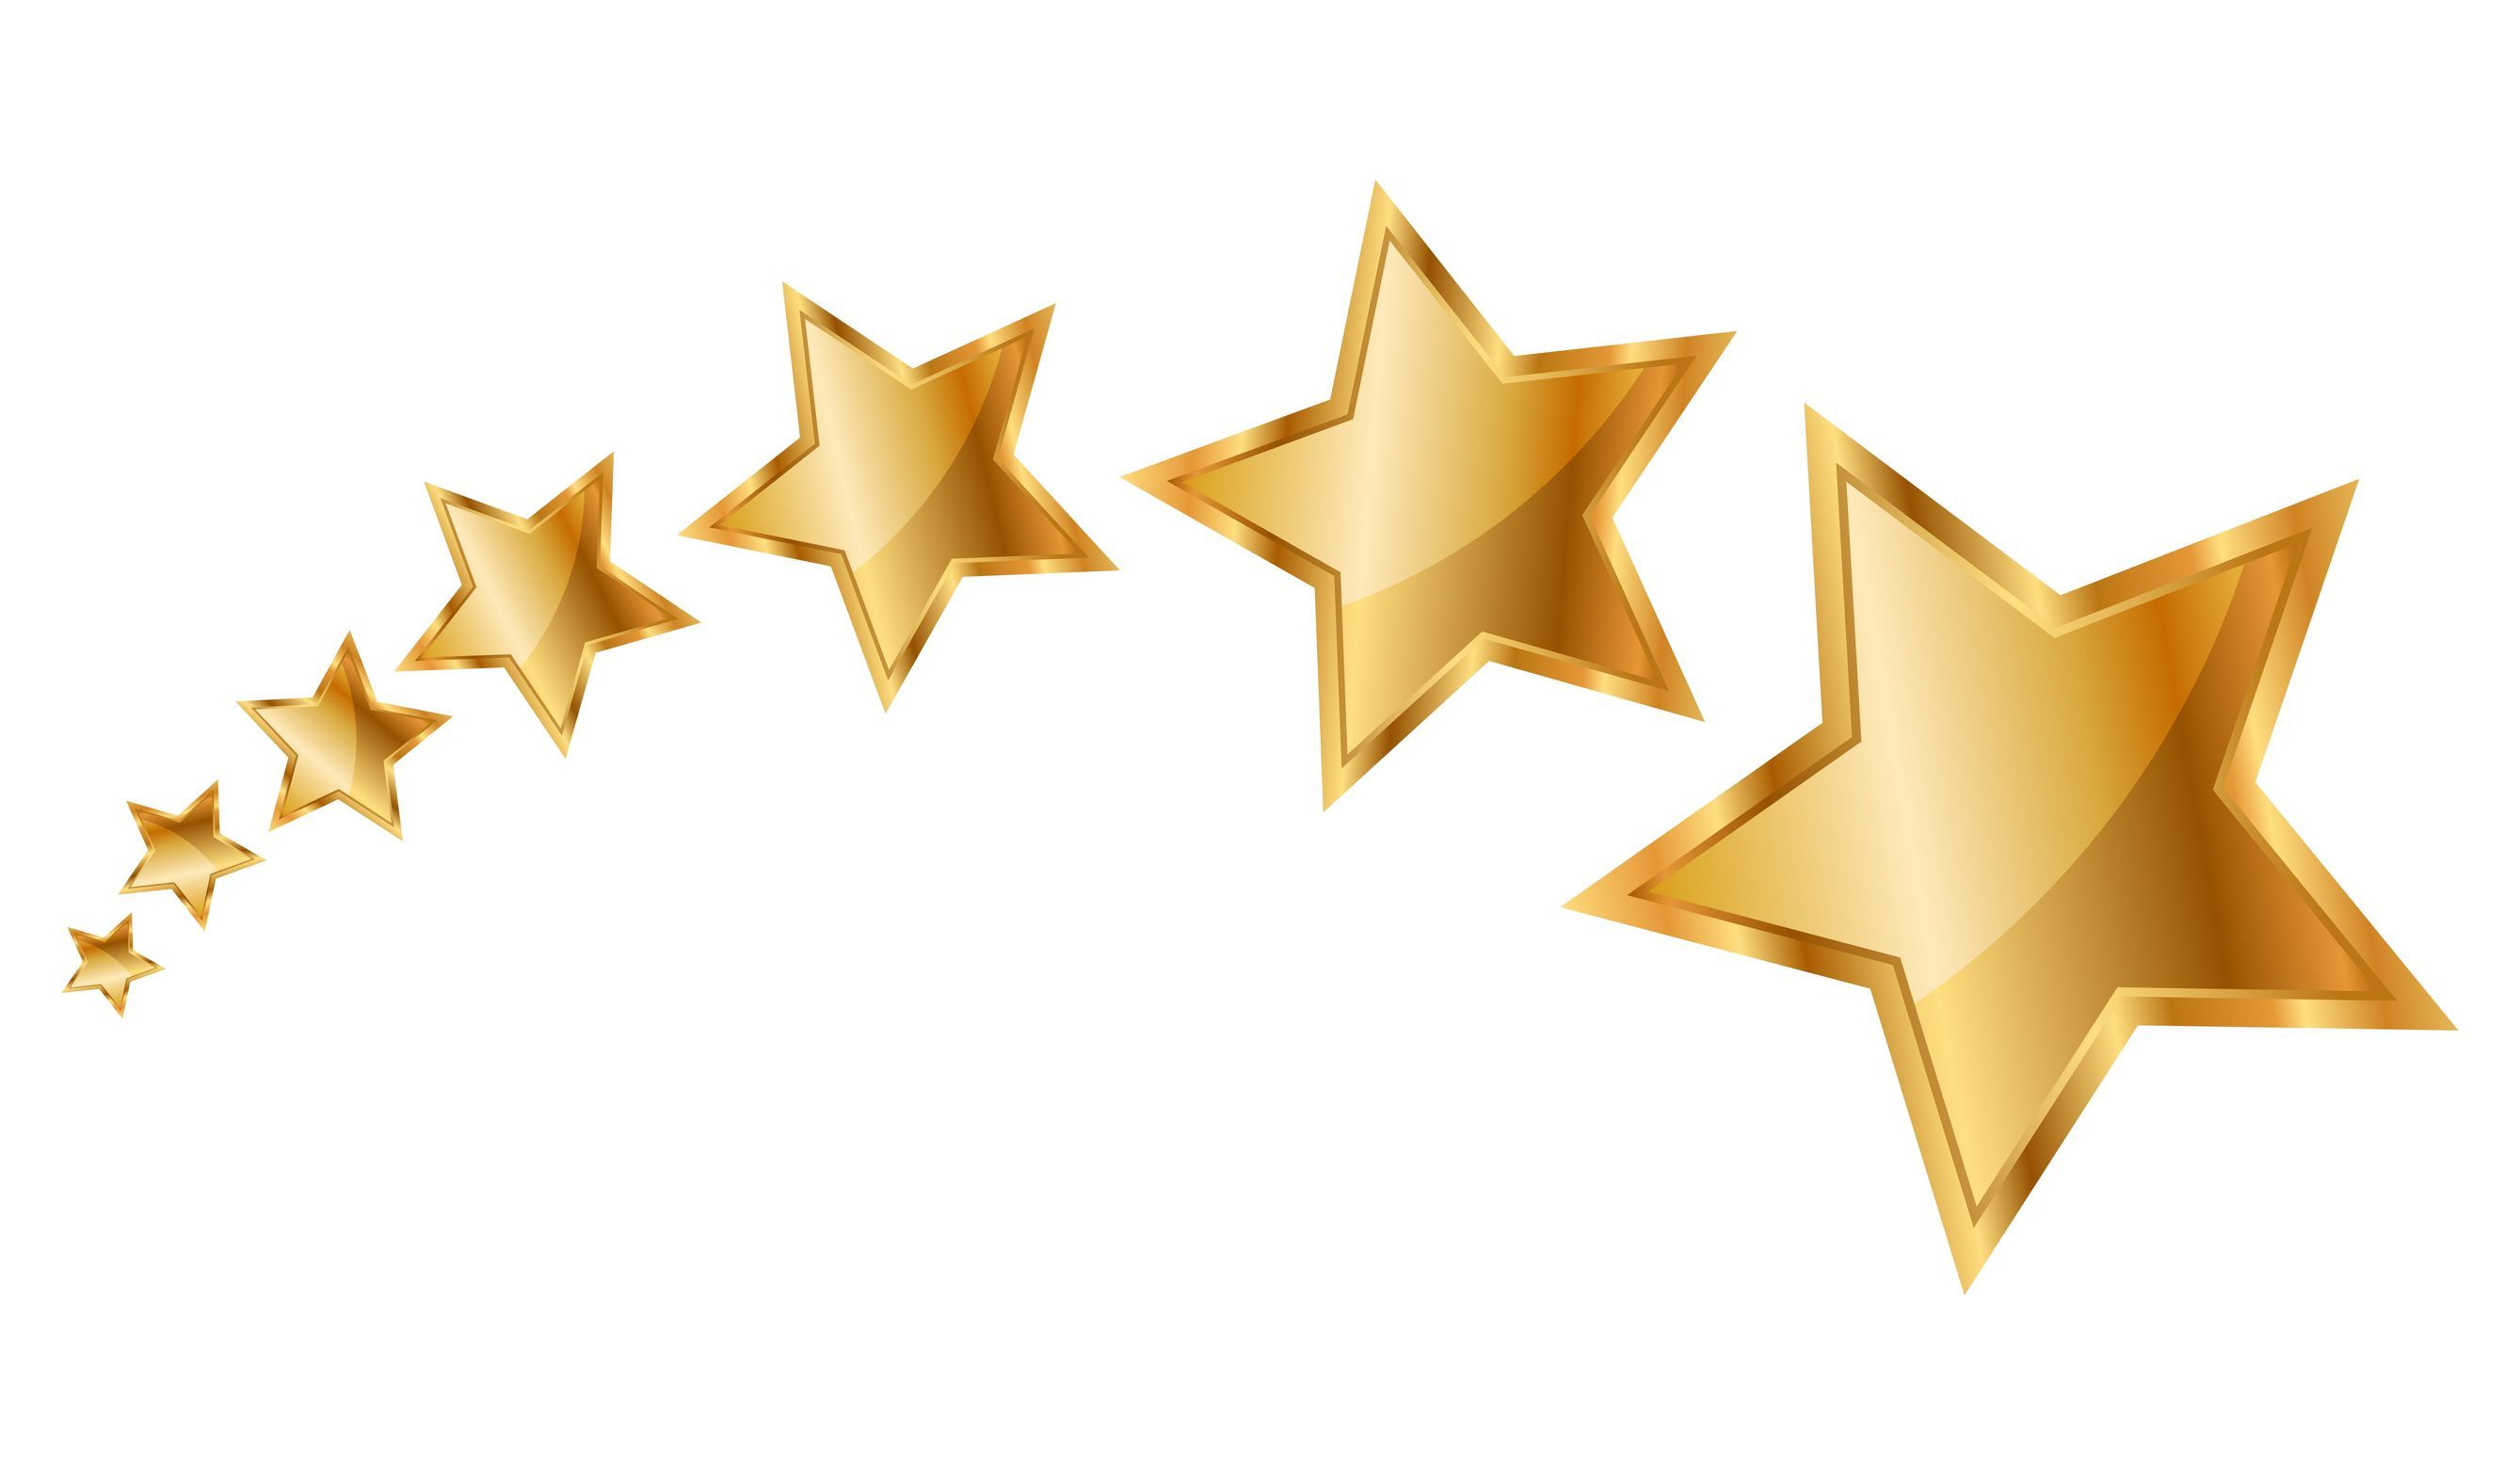 Gold star star clipart and animated graphics of stars image.